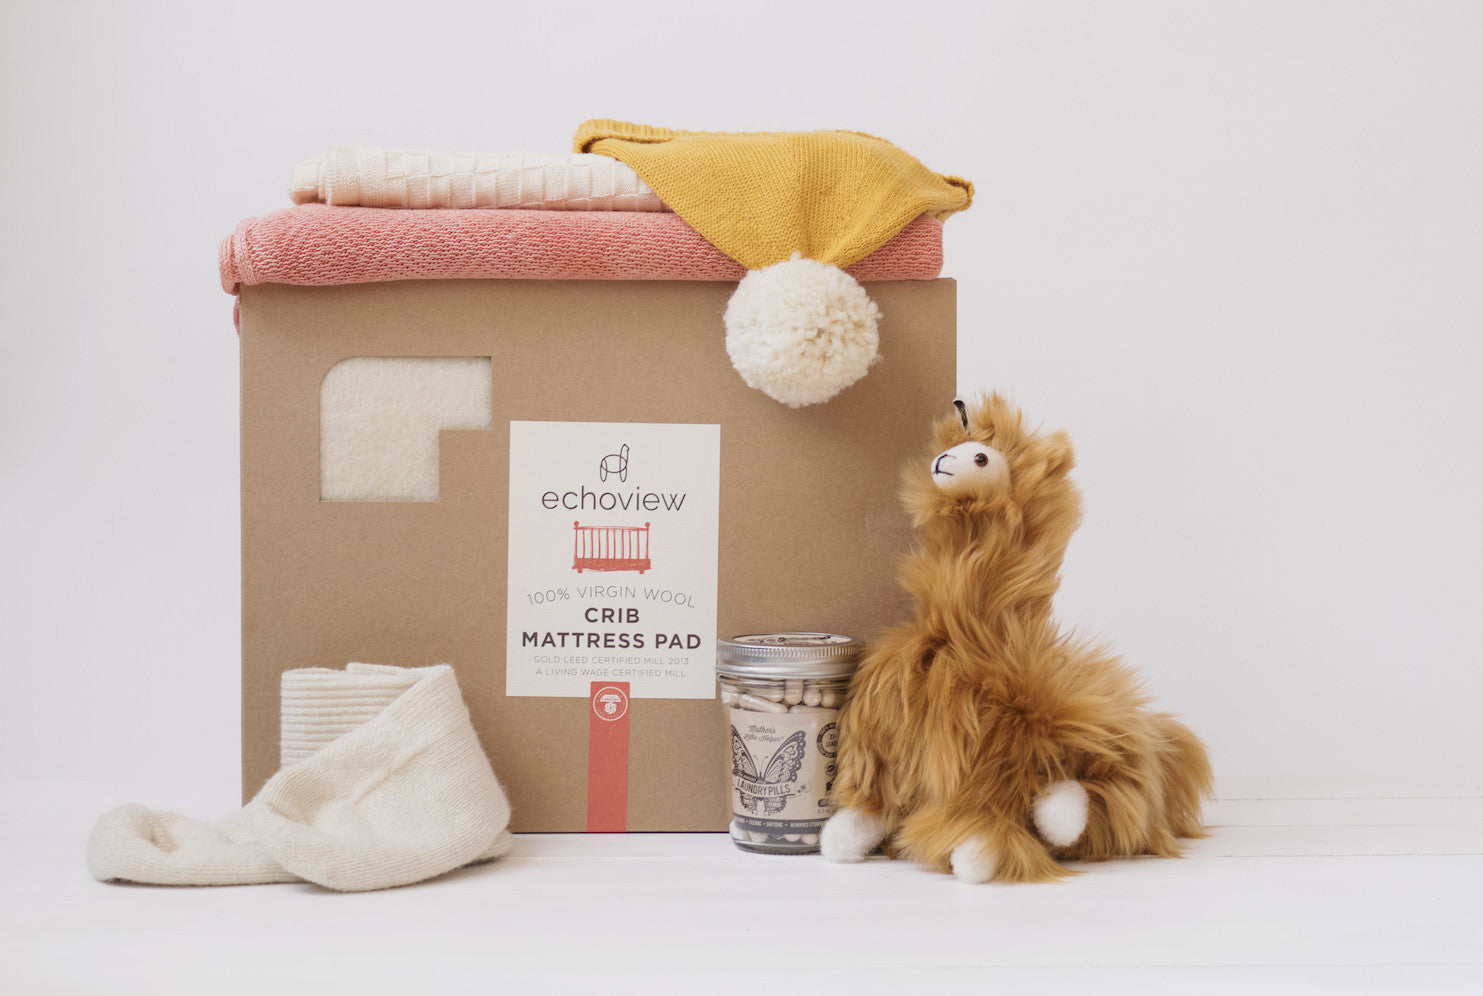 Baby Love - For the Baby, Gift Guide